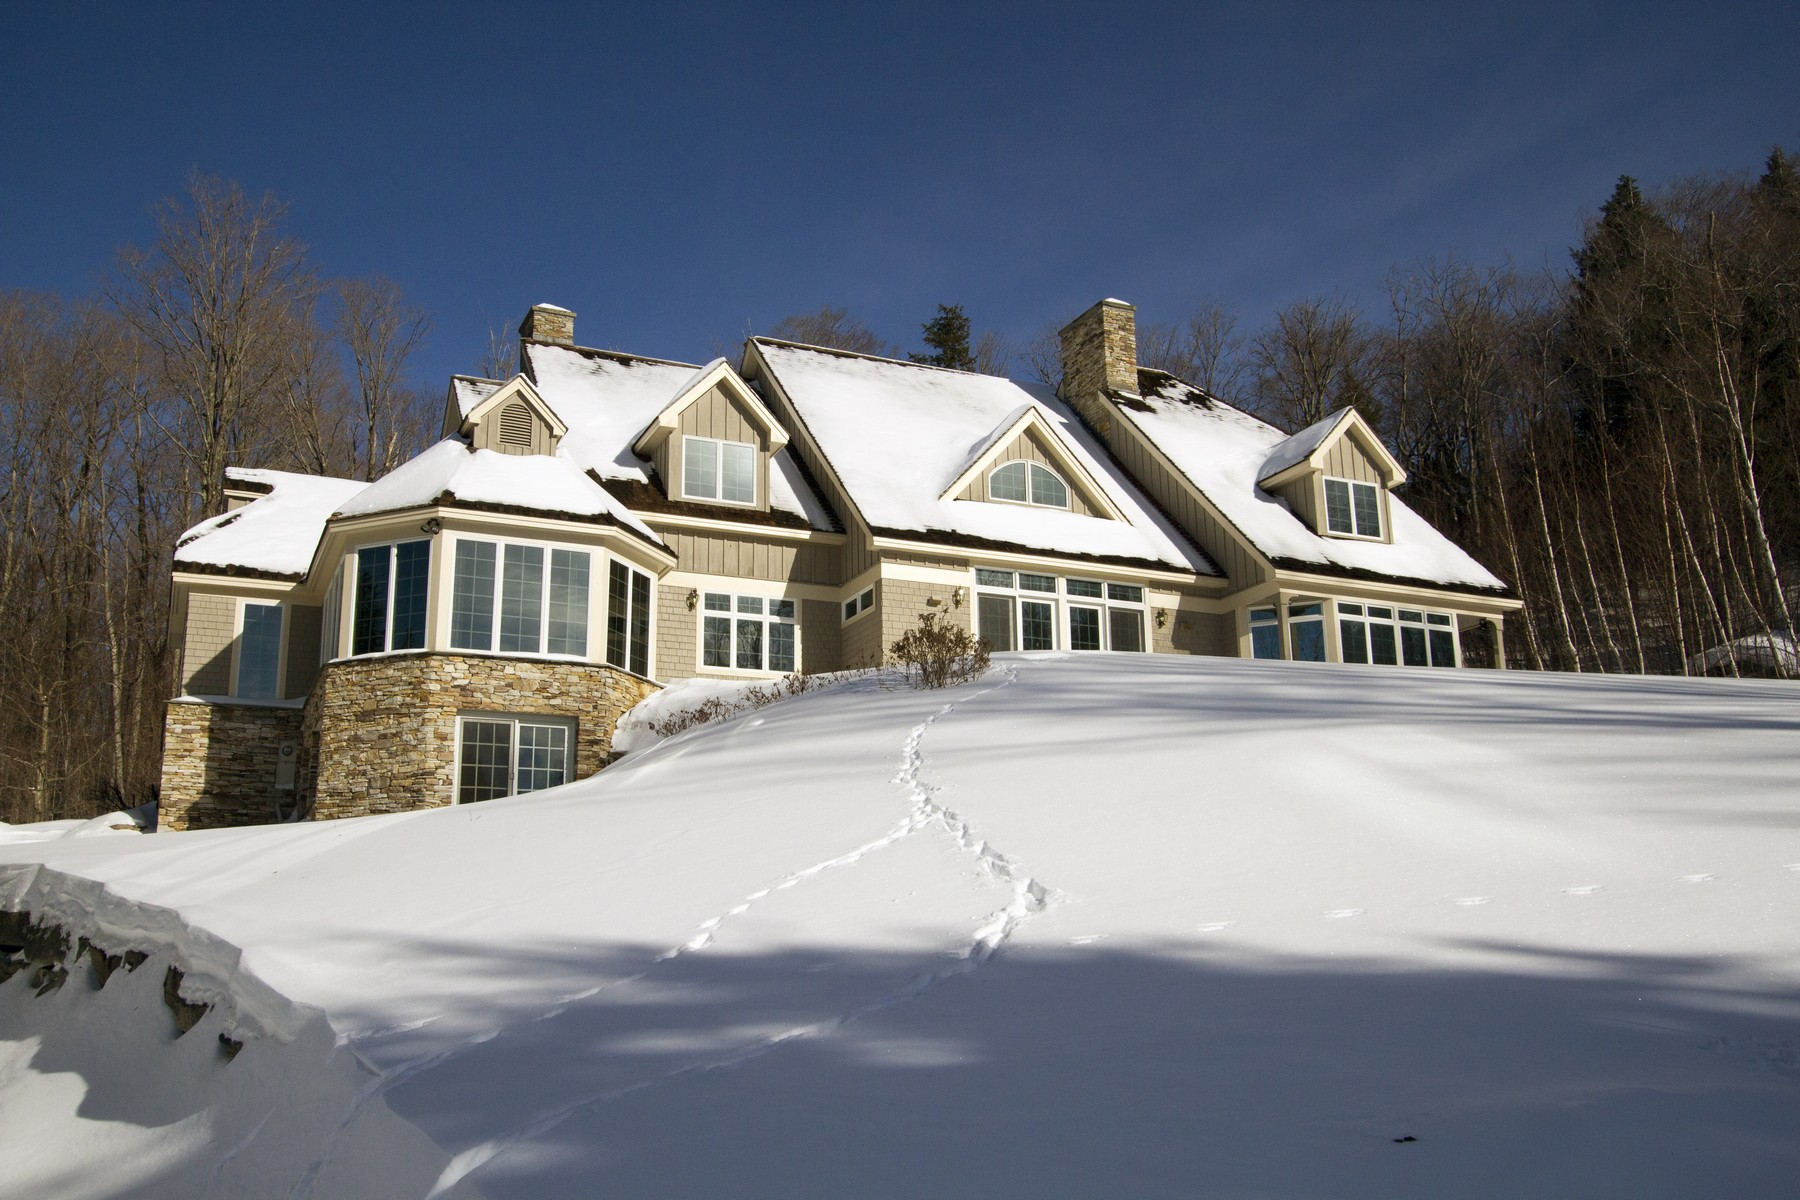 Single Family Homes for Sale at 12 Sunset Ridge Road, Winhall 12 Sunset Ridge Rd Winhall, Vermont 05340 United States